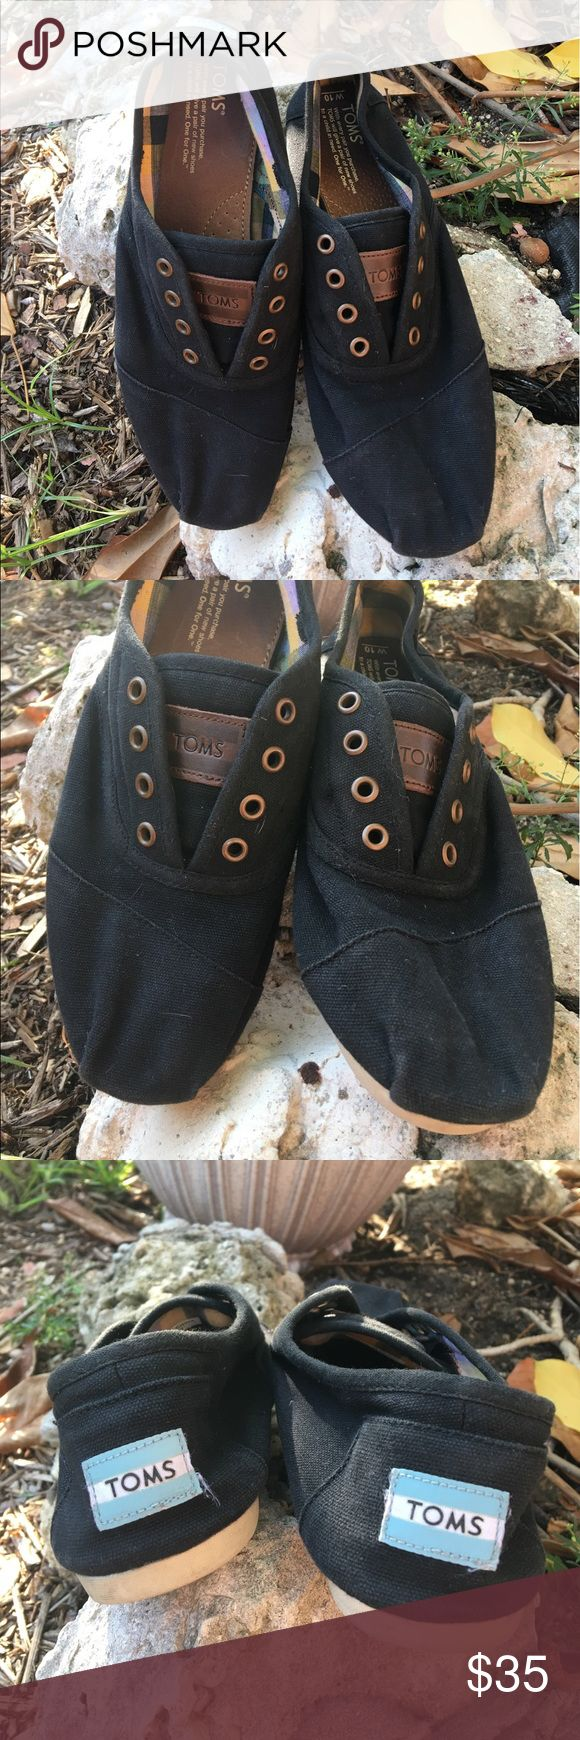 🆕Tom's Black & tan loafers Tom's black uppers with tan trim loafers. These have been worn and loved but are truly in excellent condition. No rips or stains. GUC Price is reflective of the use ✅I ship same or next day ✅Bundle for discount TOMS Shoes Flats & Loafers